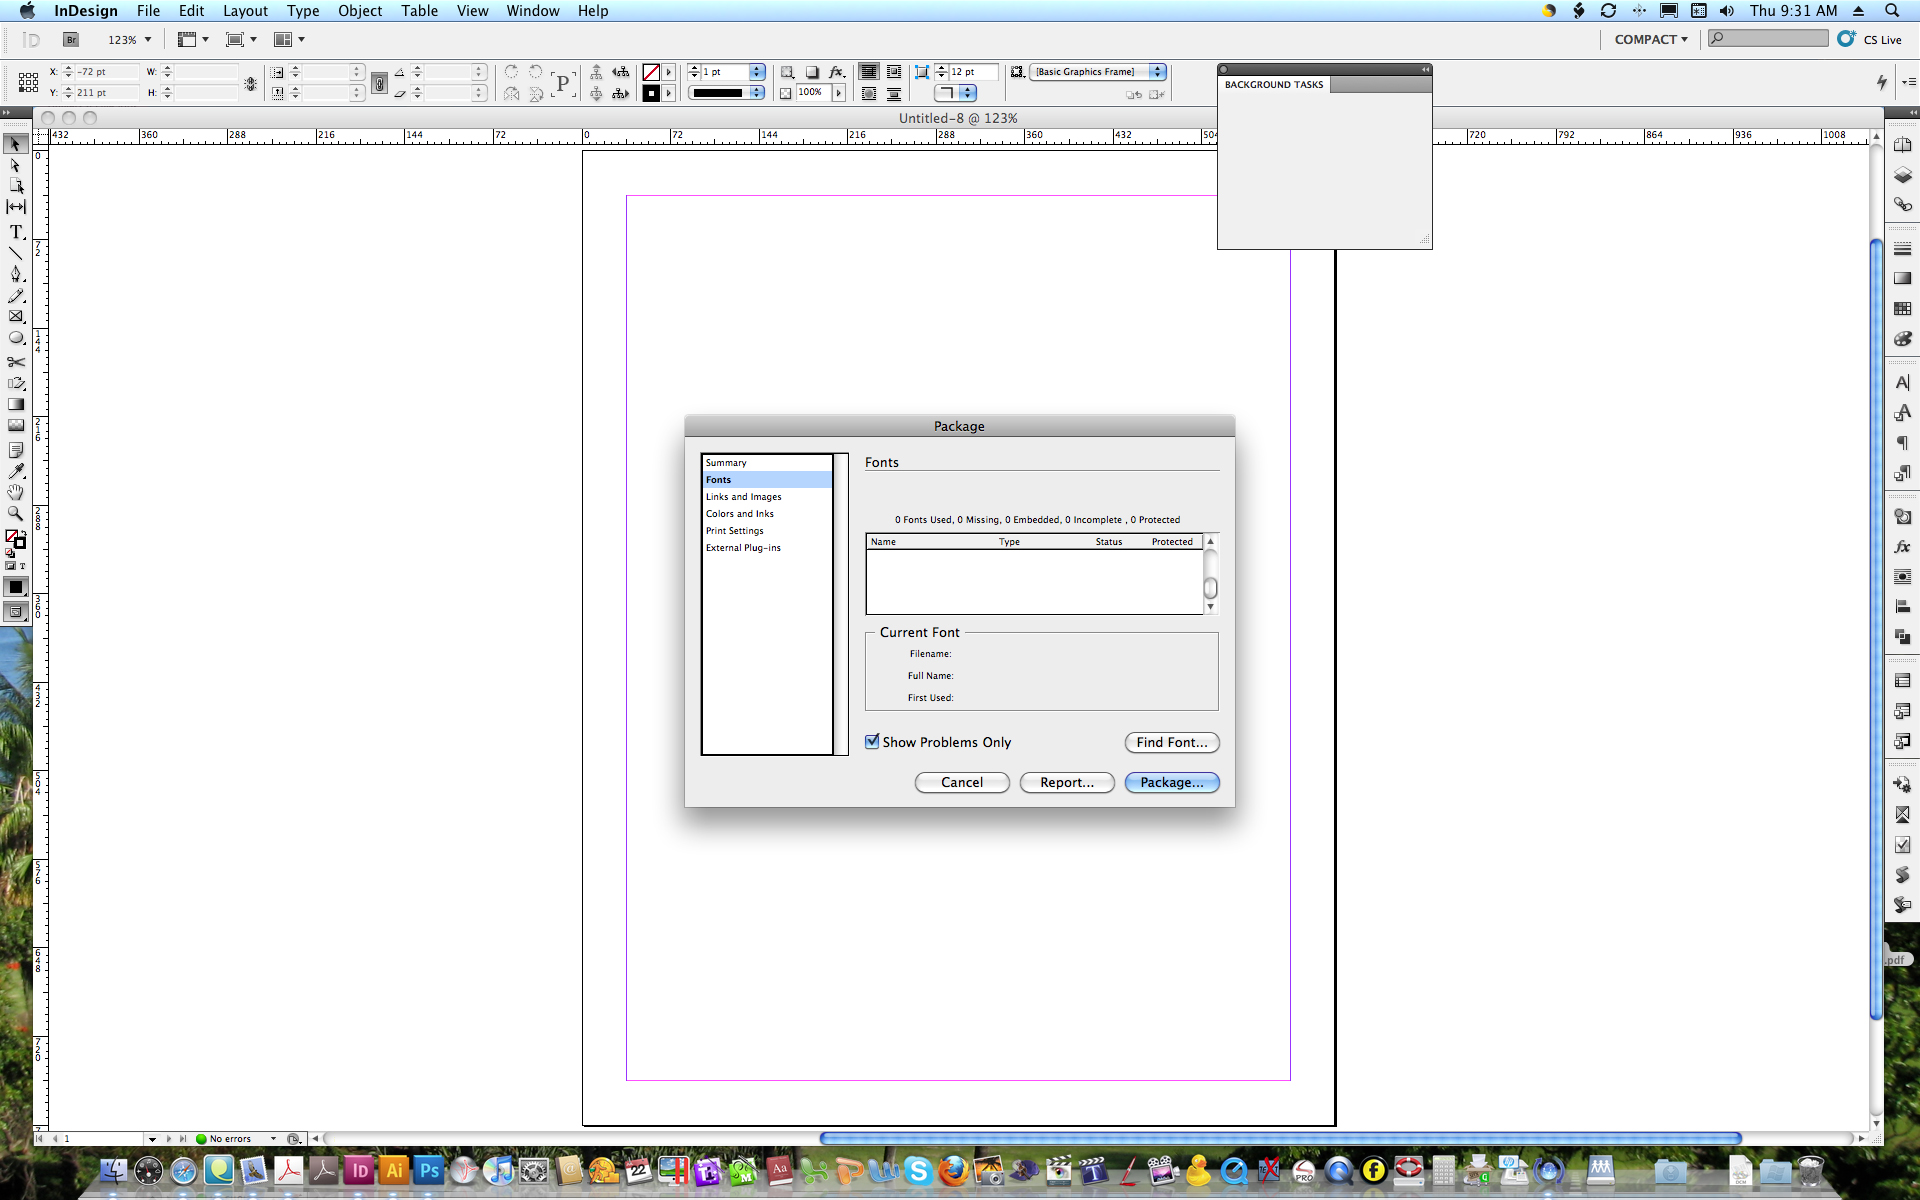 InDesign Package Window